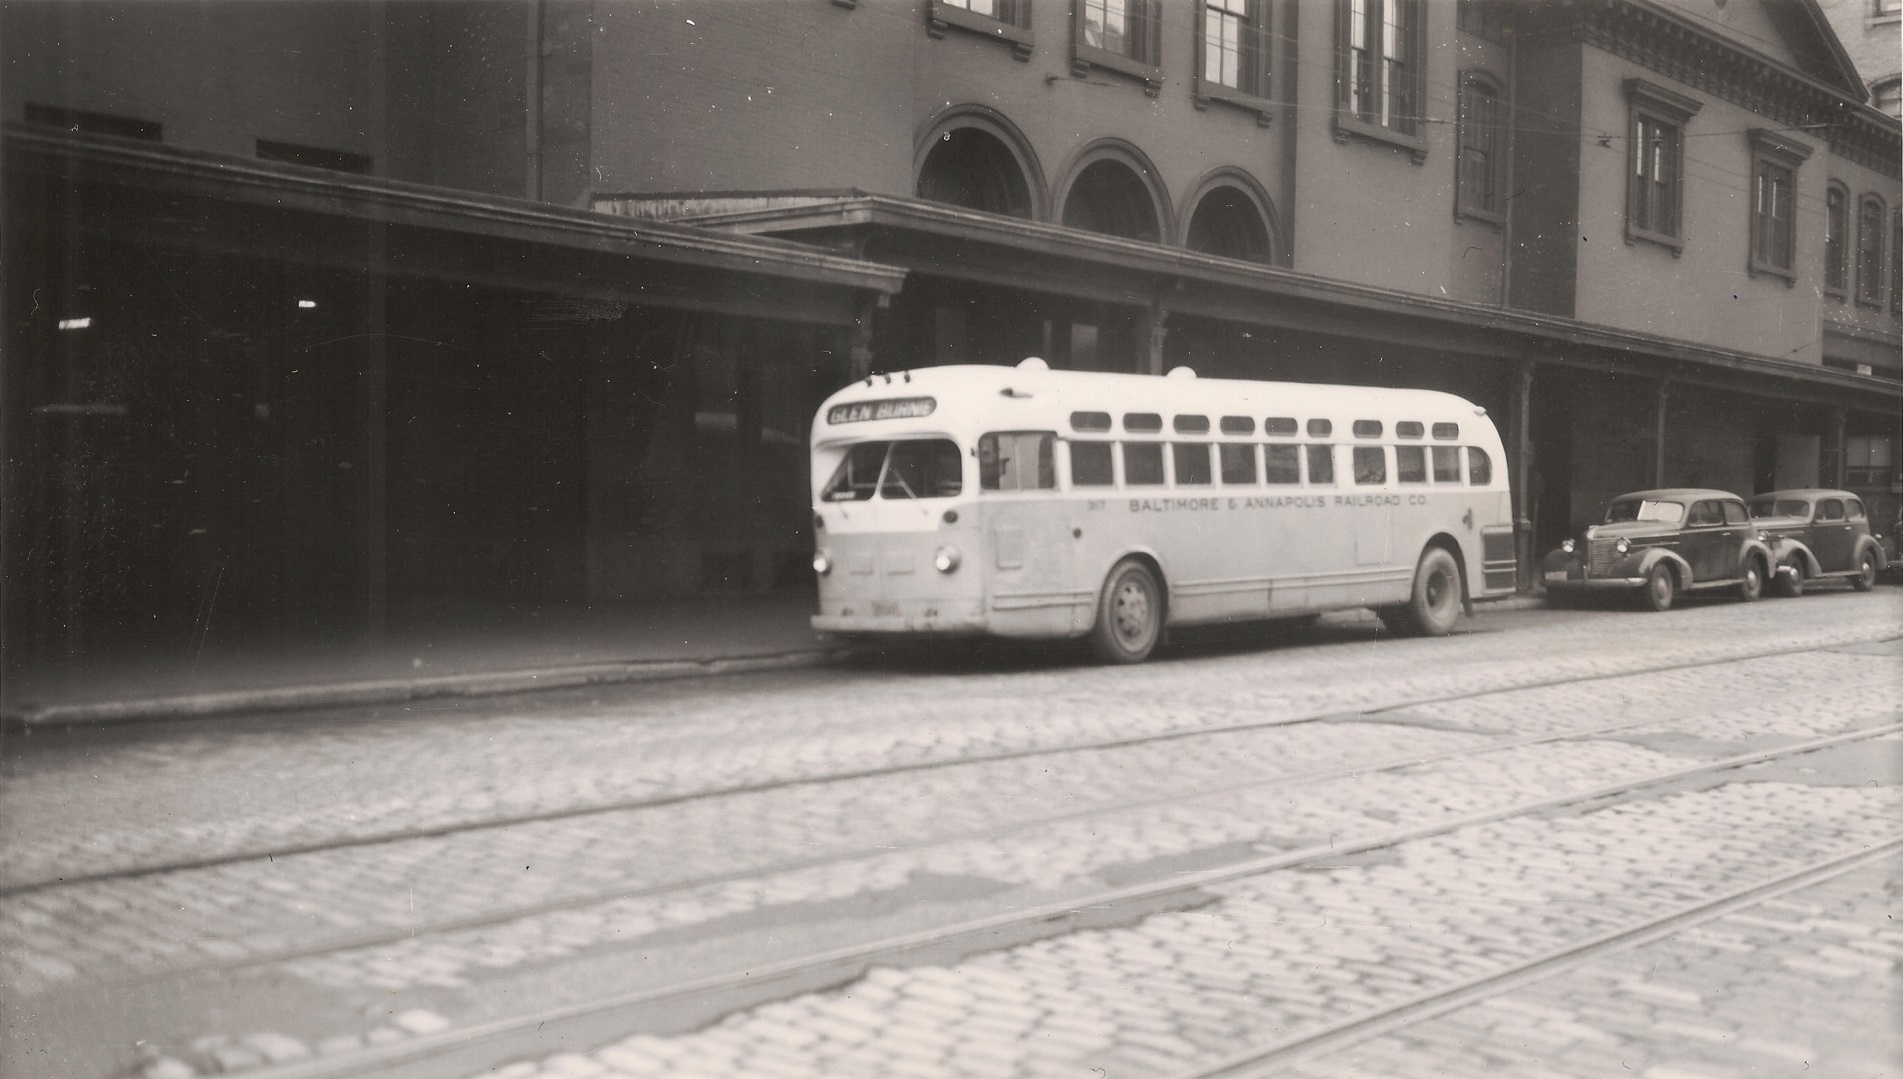 Baltimore & Annapolis Railroad bus outside of Camden Station in Baltimore, Maryland. Date: Unknown. Source: Kevin Mueller Collection.